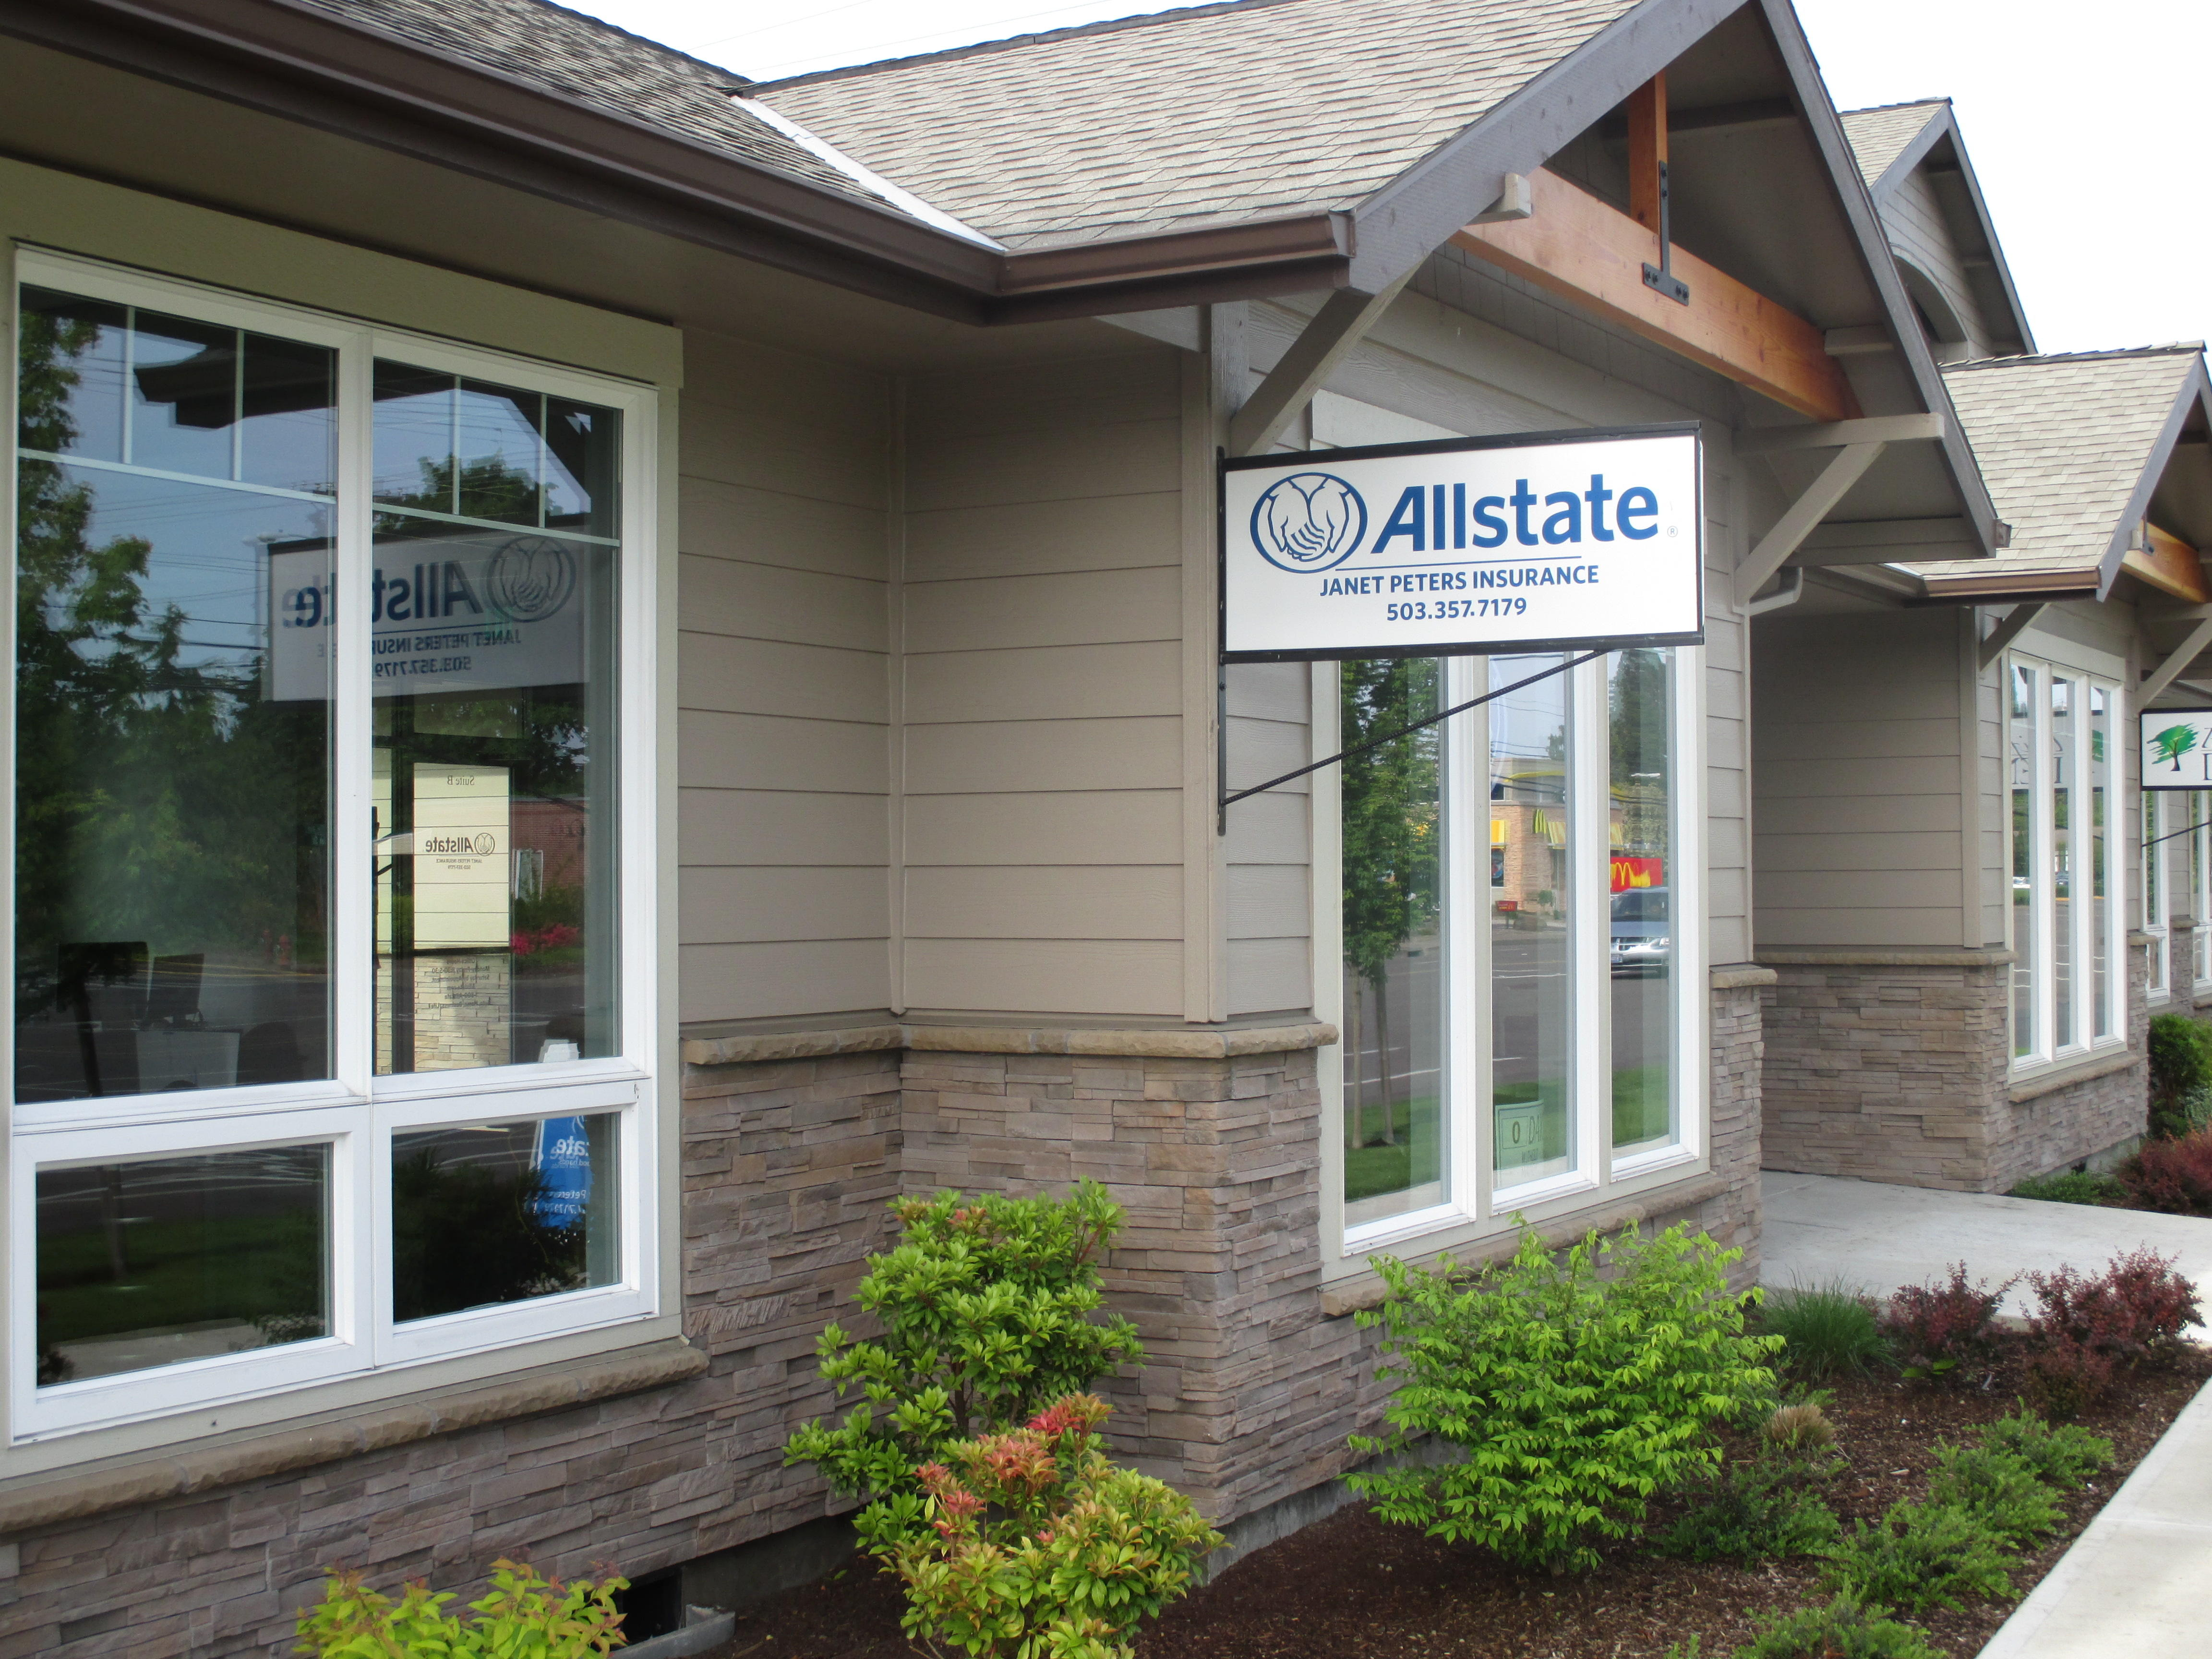 Janet Peters: Allstate Insurance image 1